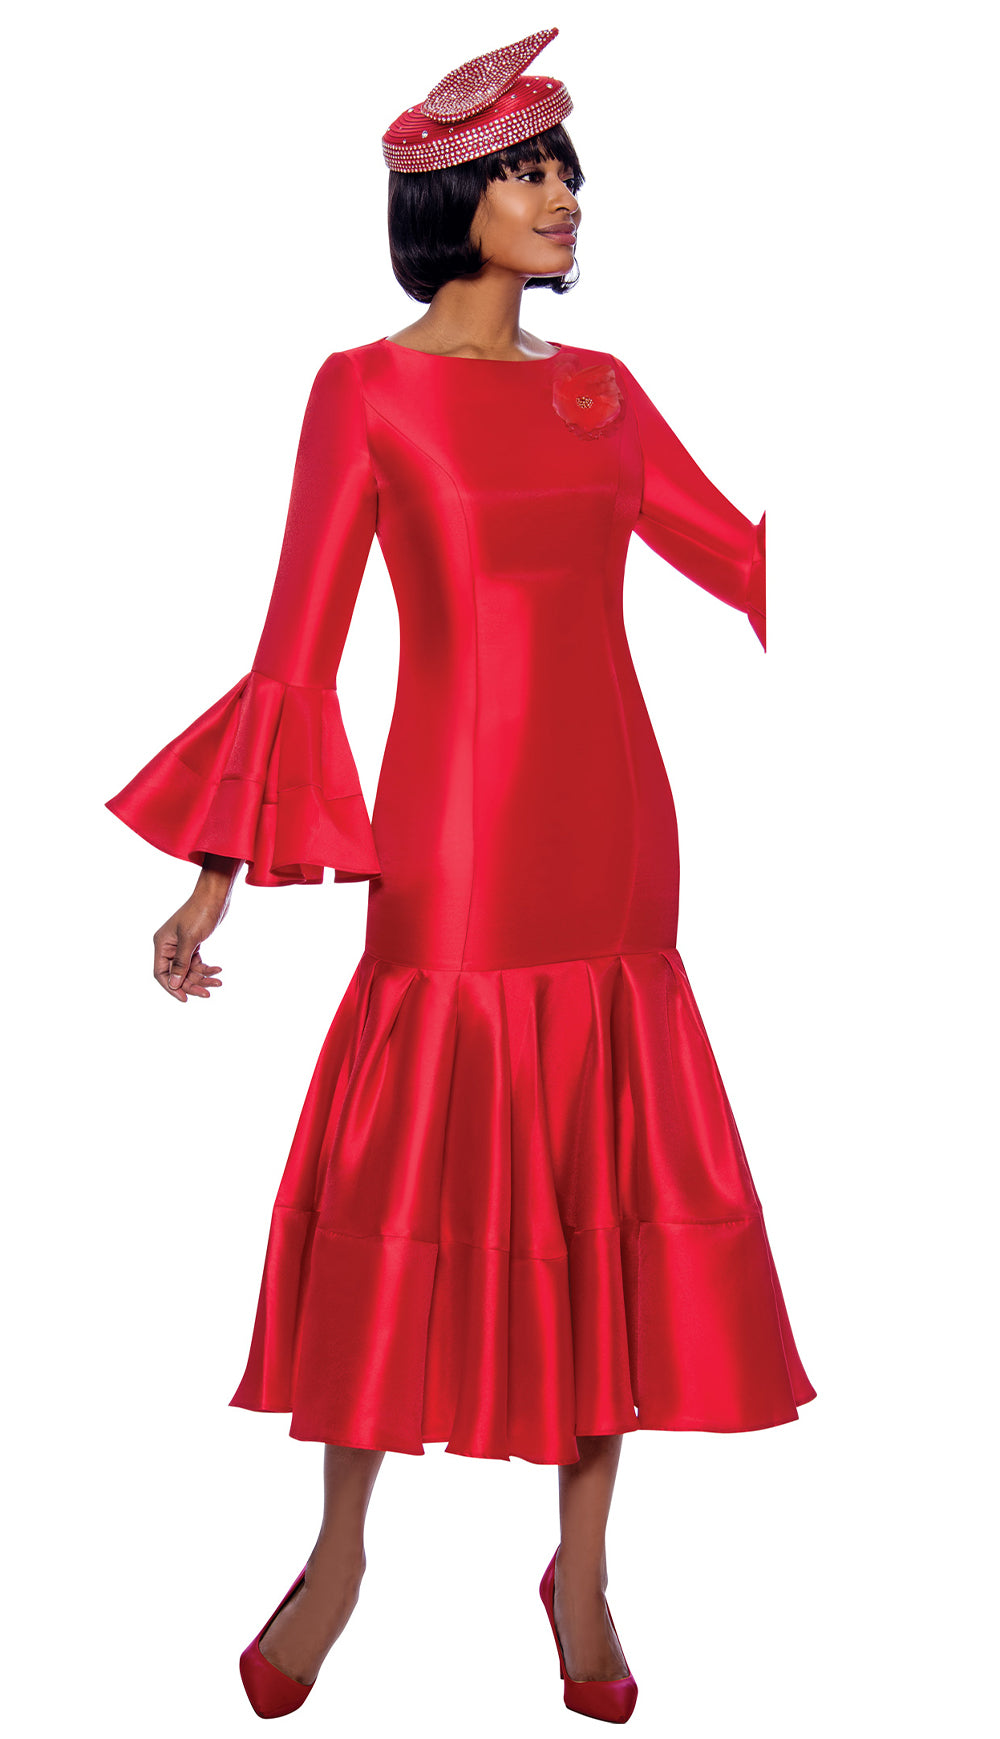 Terramina Dress 7764-Red - Church Suits For Less